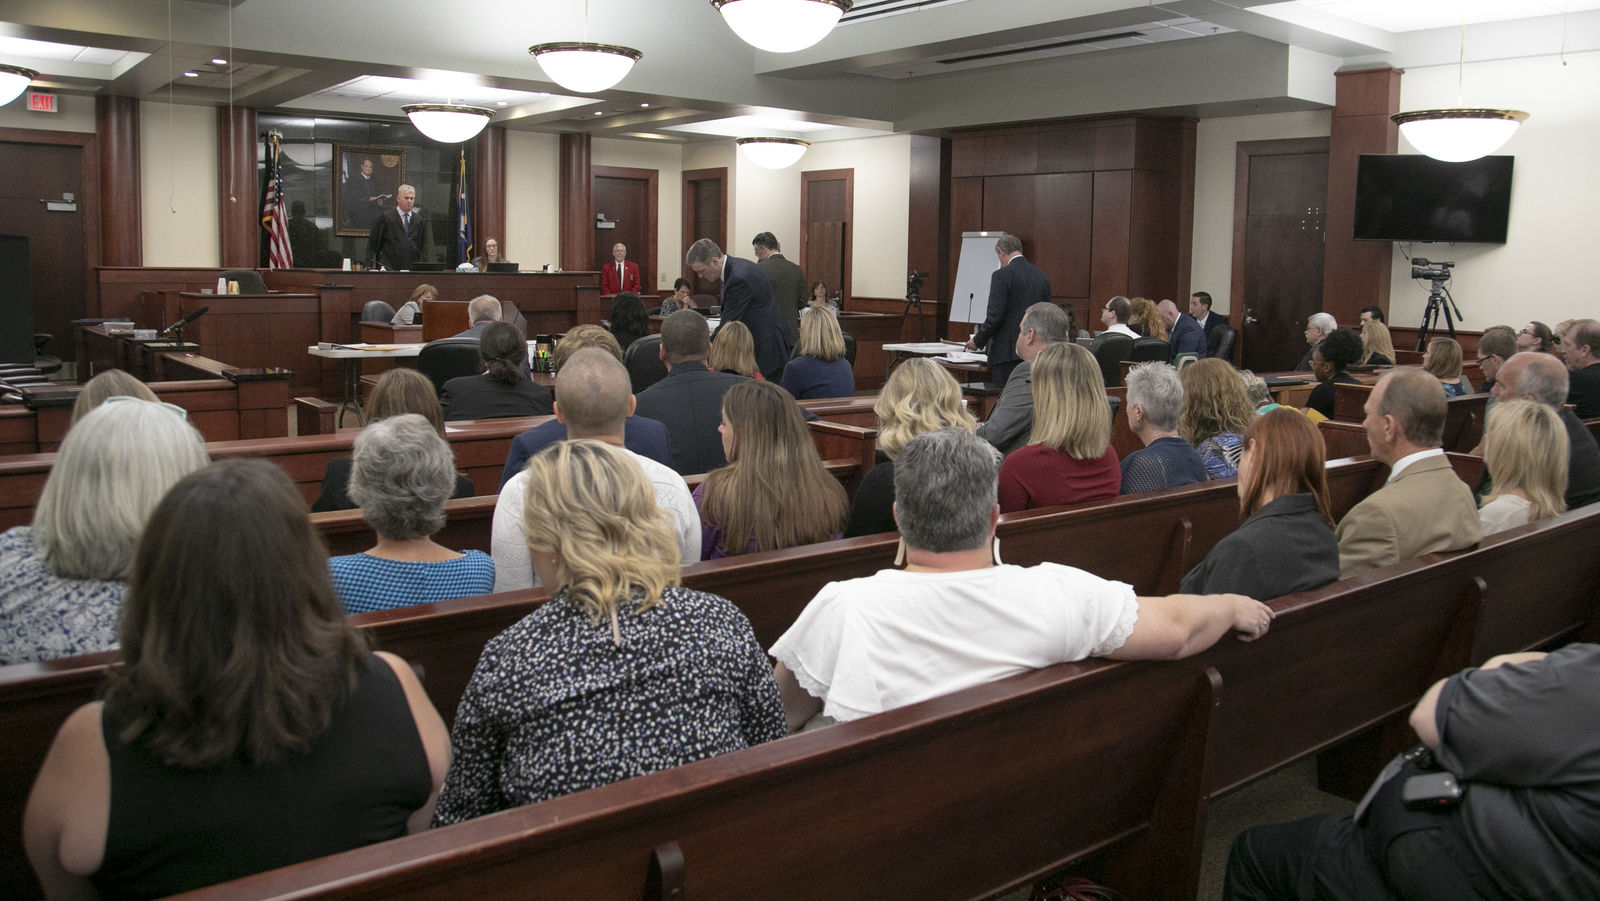 People from Saxe Gotha Elementary School fill the courtroom during the sentencing phase of the trial of Timothy Jones Jr. in Lexington, S.C. on Thursday, June 13, 2019.  Jones, Jr. was found guilty of killing his five young children in 2014. (Tracy Glantz/The State via AP, Pool)